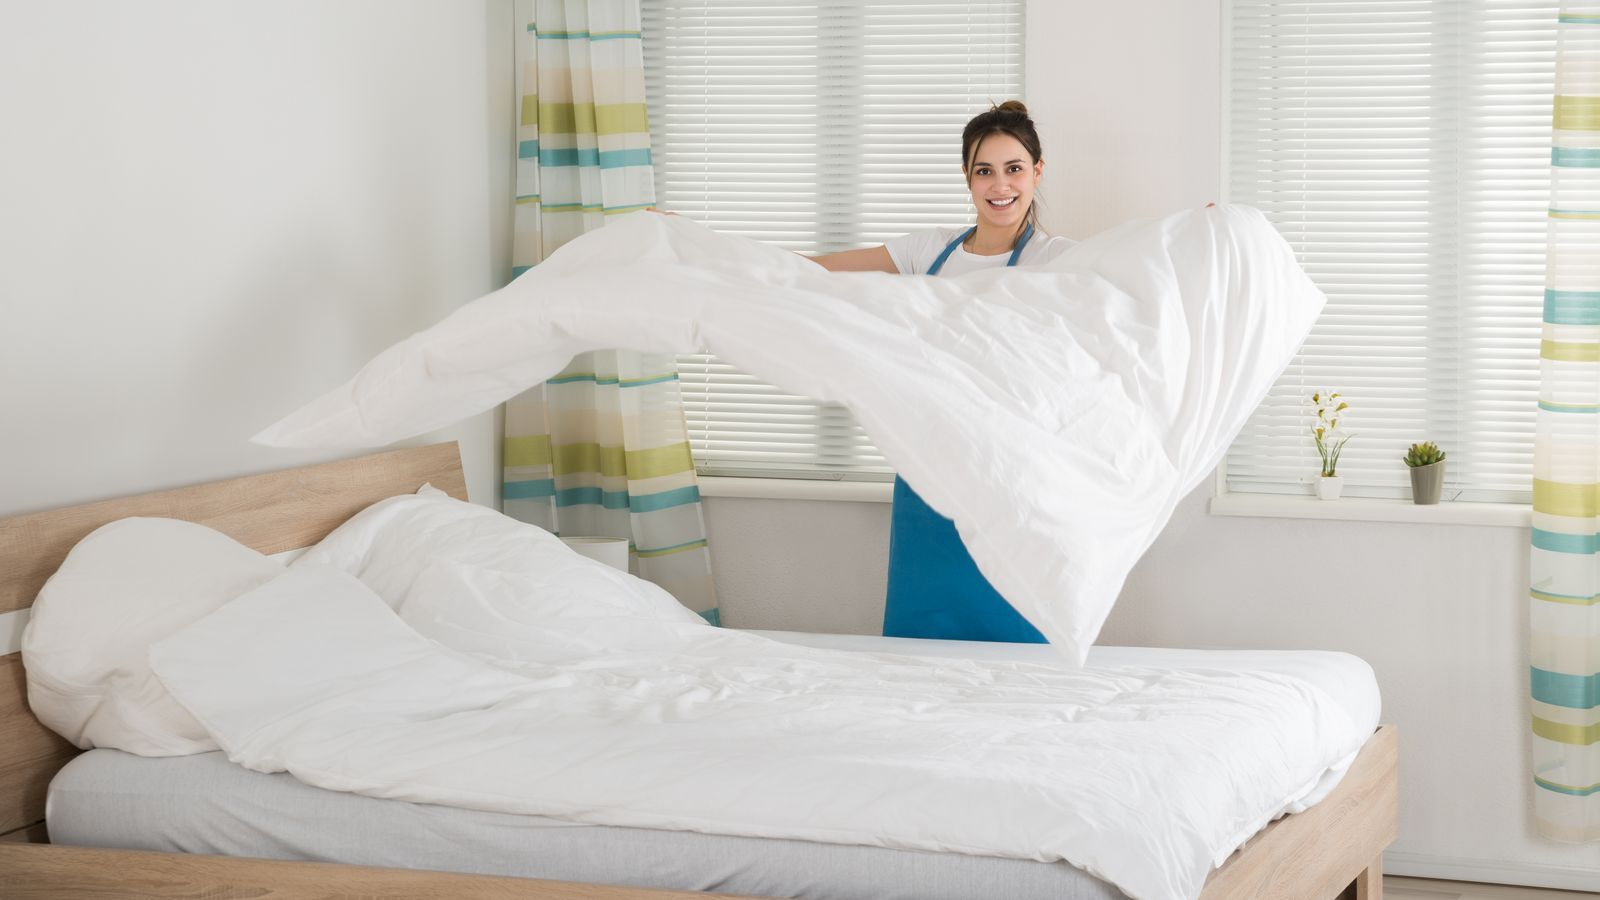 Disposable bedsheets for college kids are now a thing